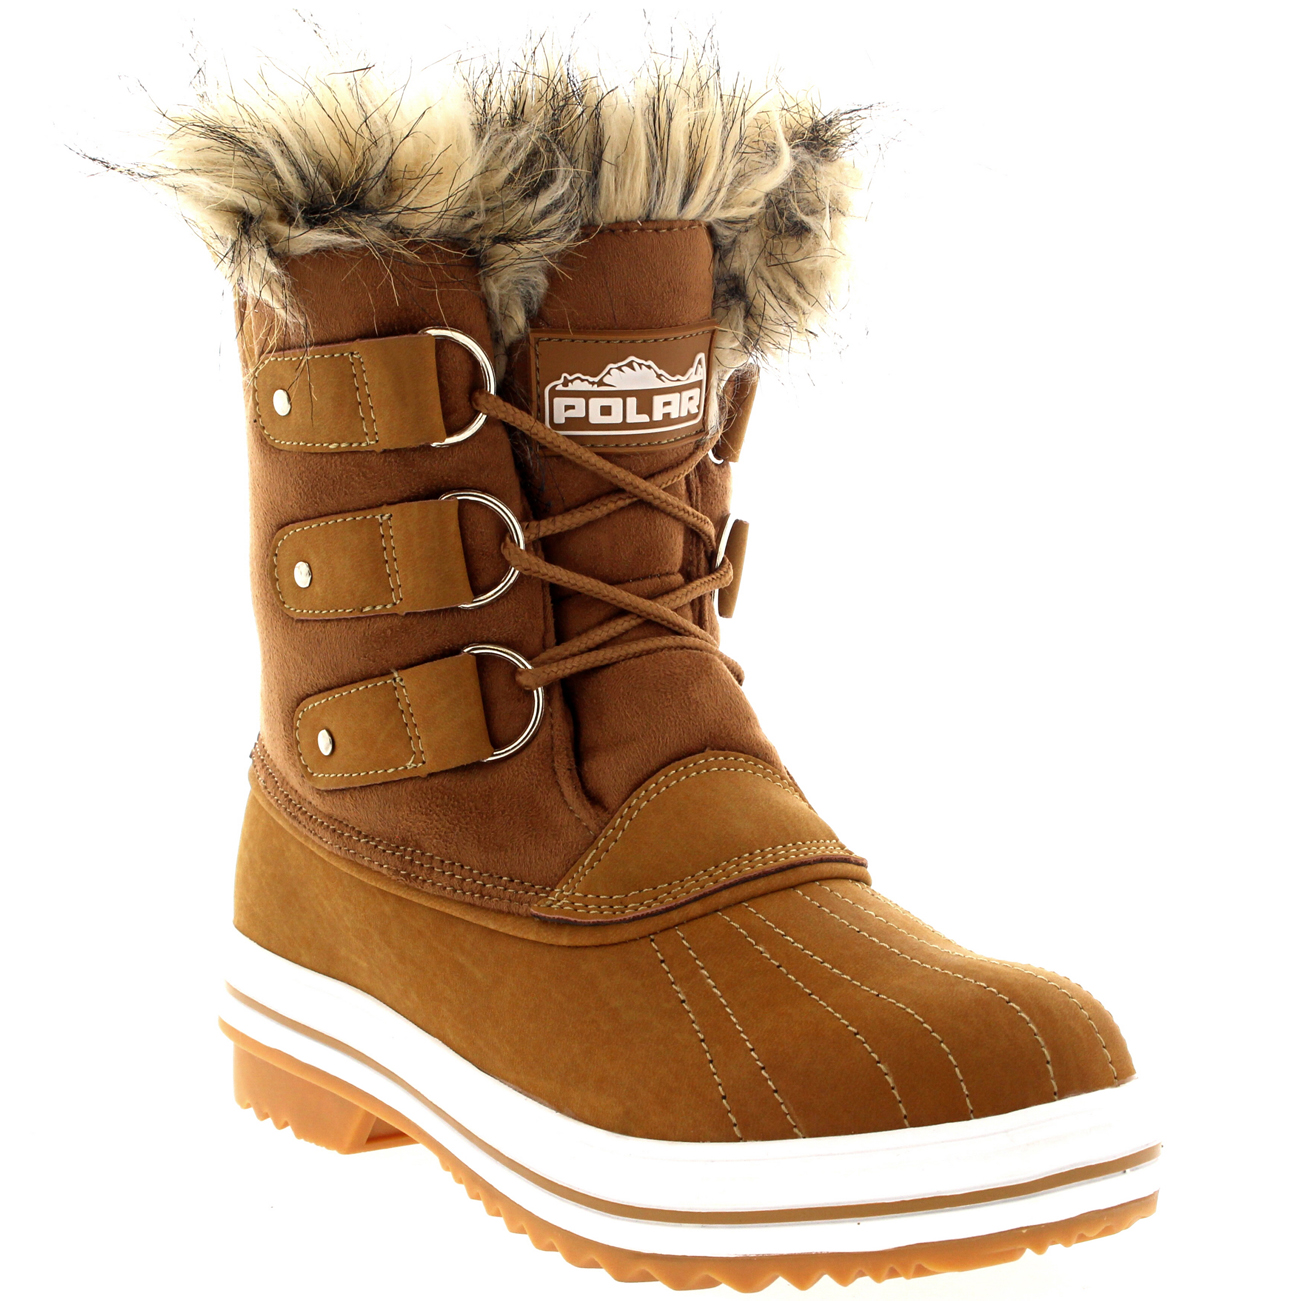 Womens Rubber Snow Boots | Santa Barbara Institute for ...